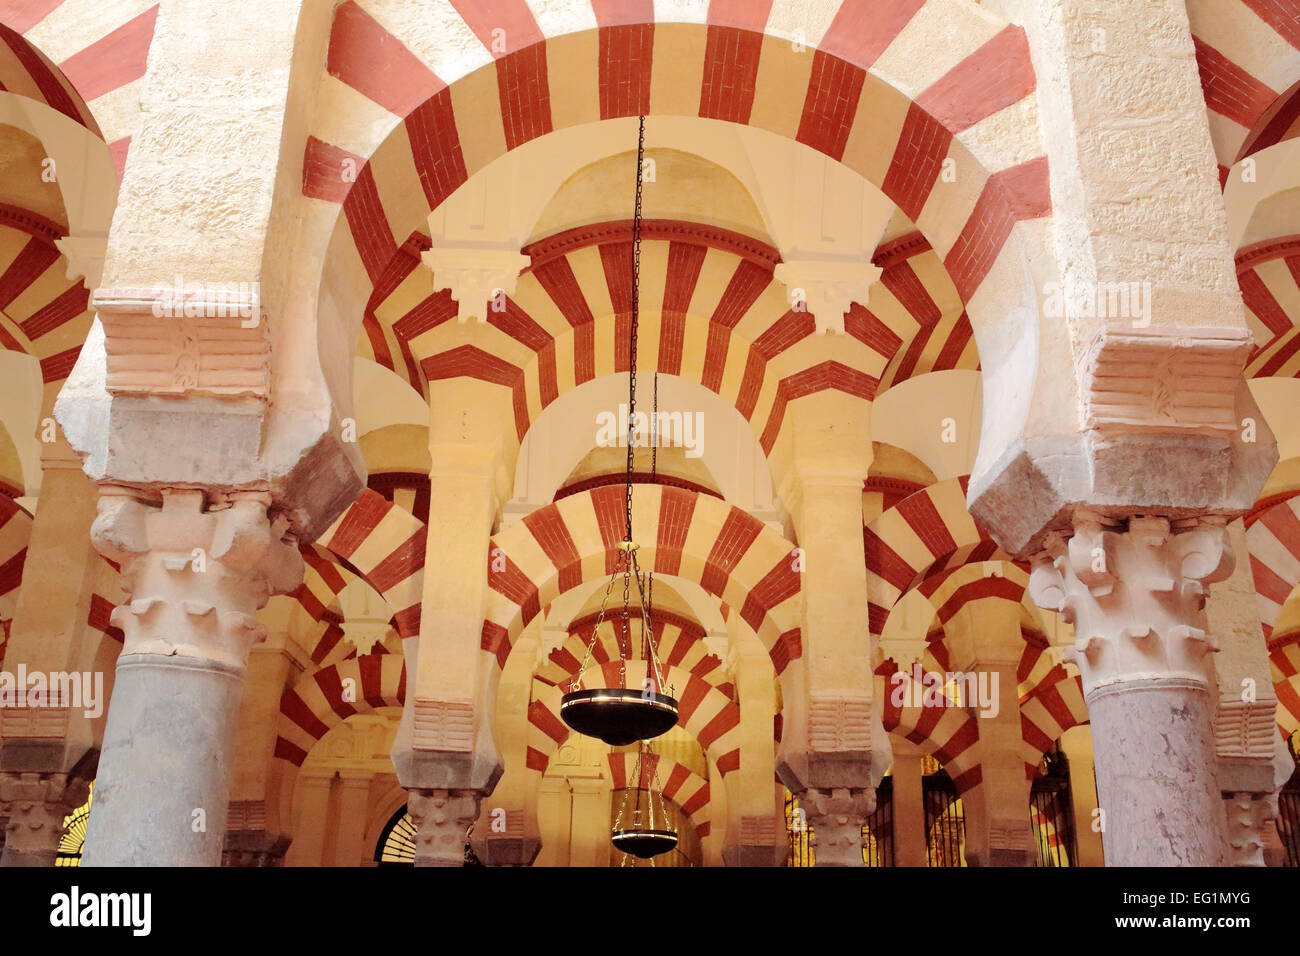 Prayer hall interior, Cathedral (Mezquita), Cordoba, Andalusia, Spain - Stock Image